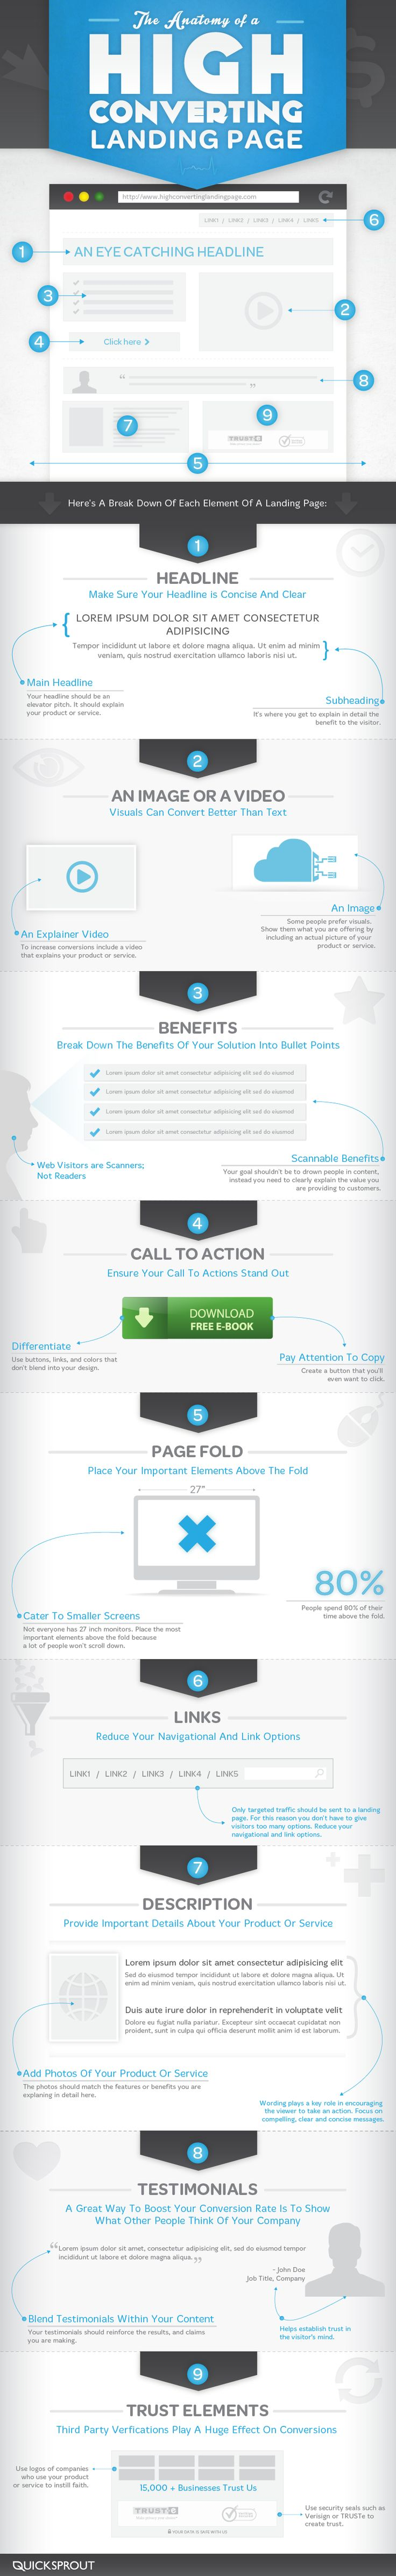 The Anatomy of a High Converting Landing Page  Need help with Growth hacking, get in touch with us here - http://digiwale.com